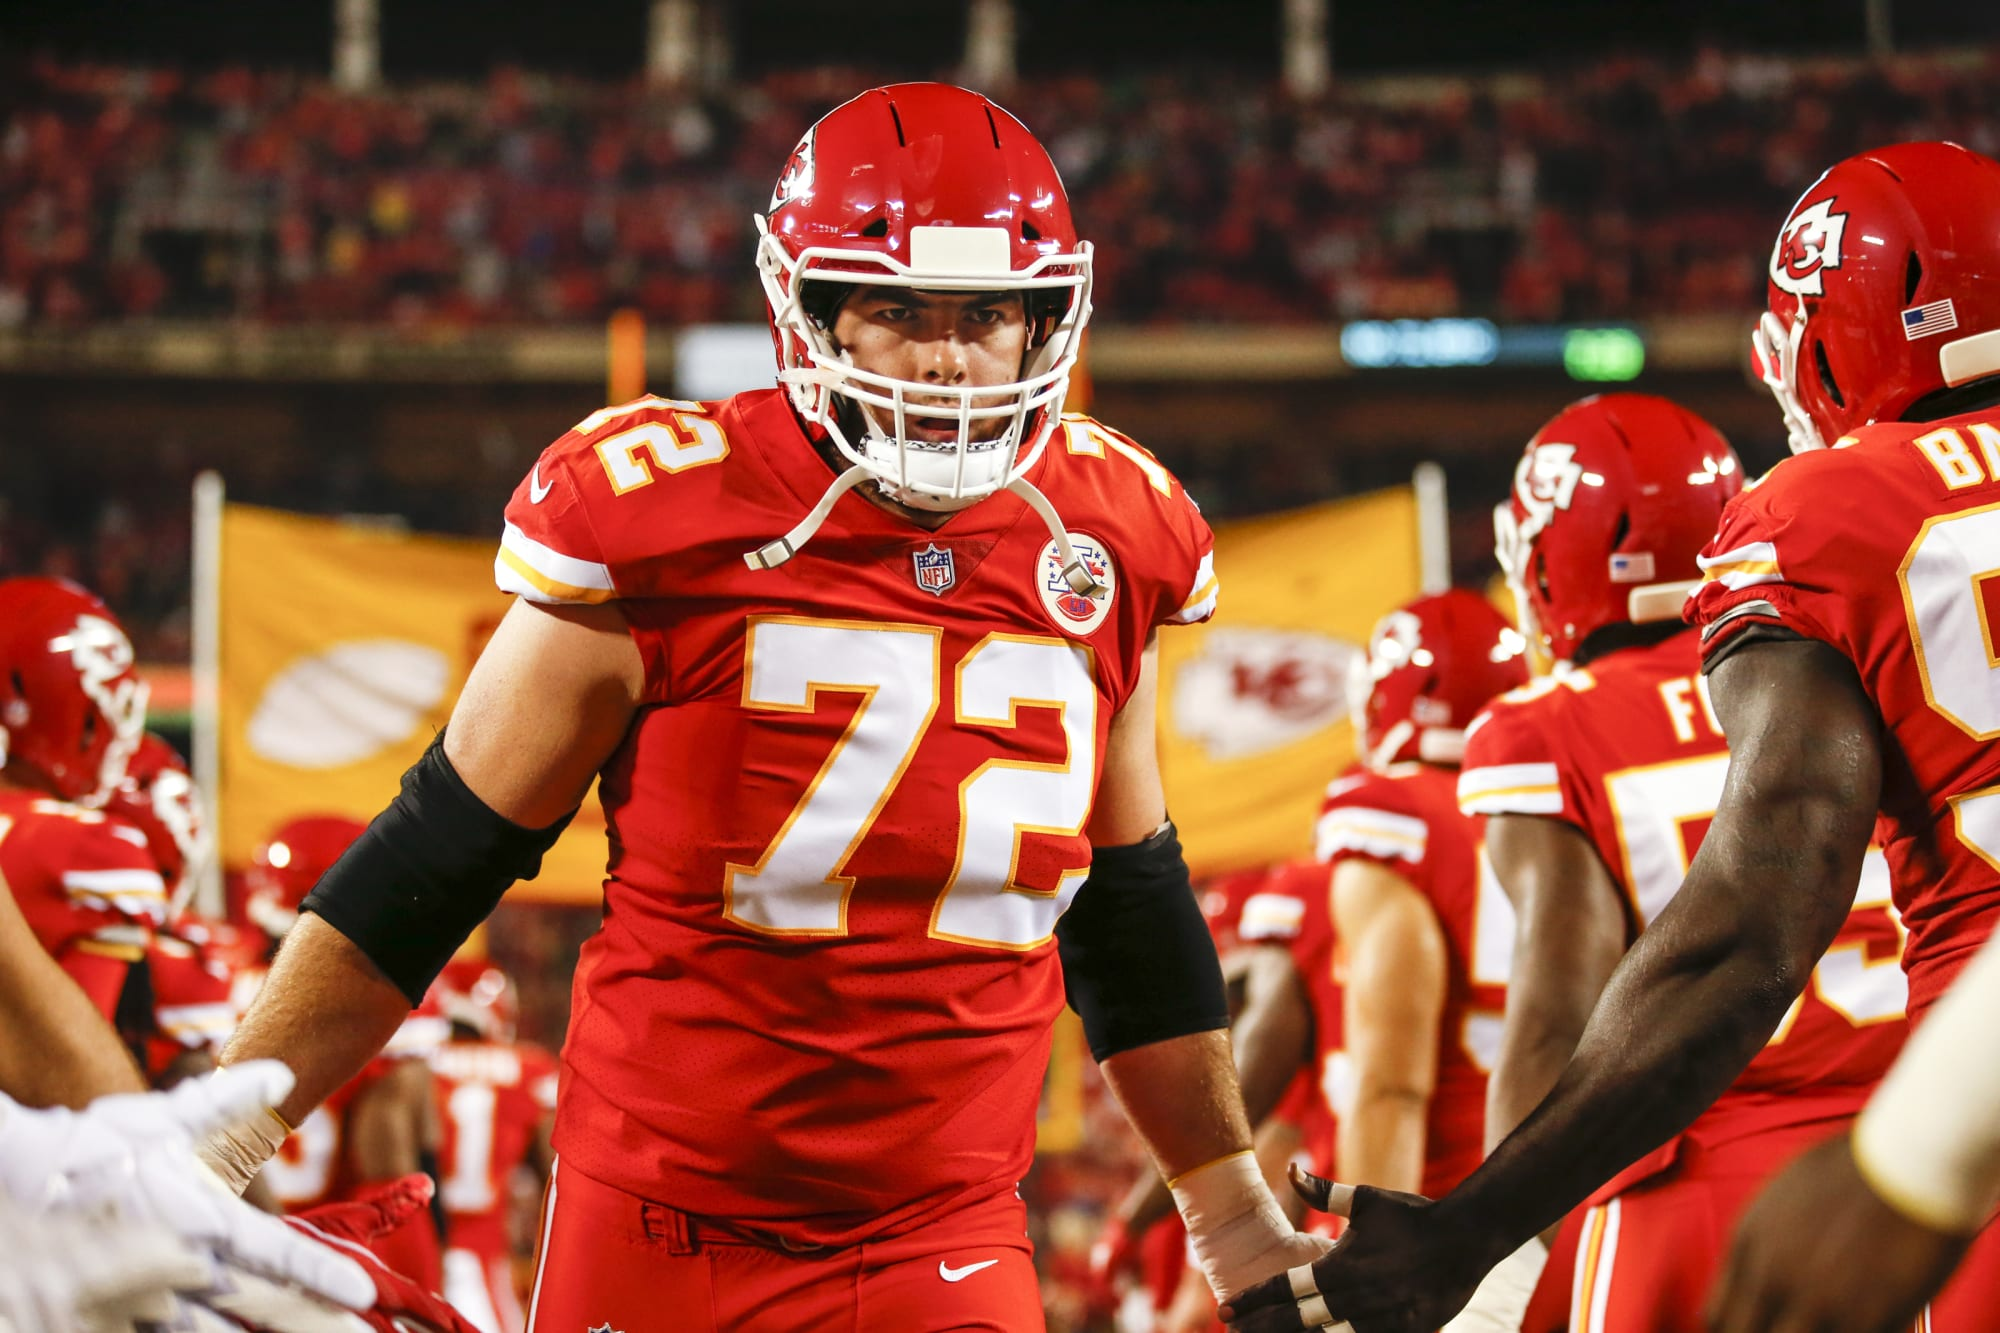 Colts sign Eric Fisher in incredibly risky move to protect Carson Wentz